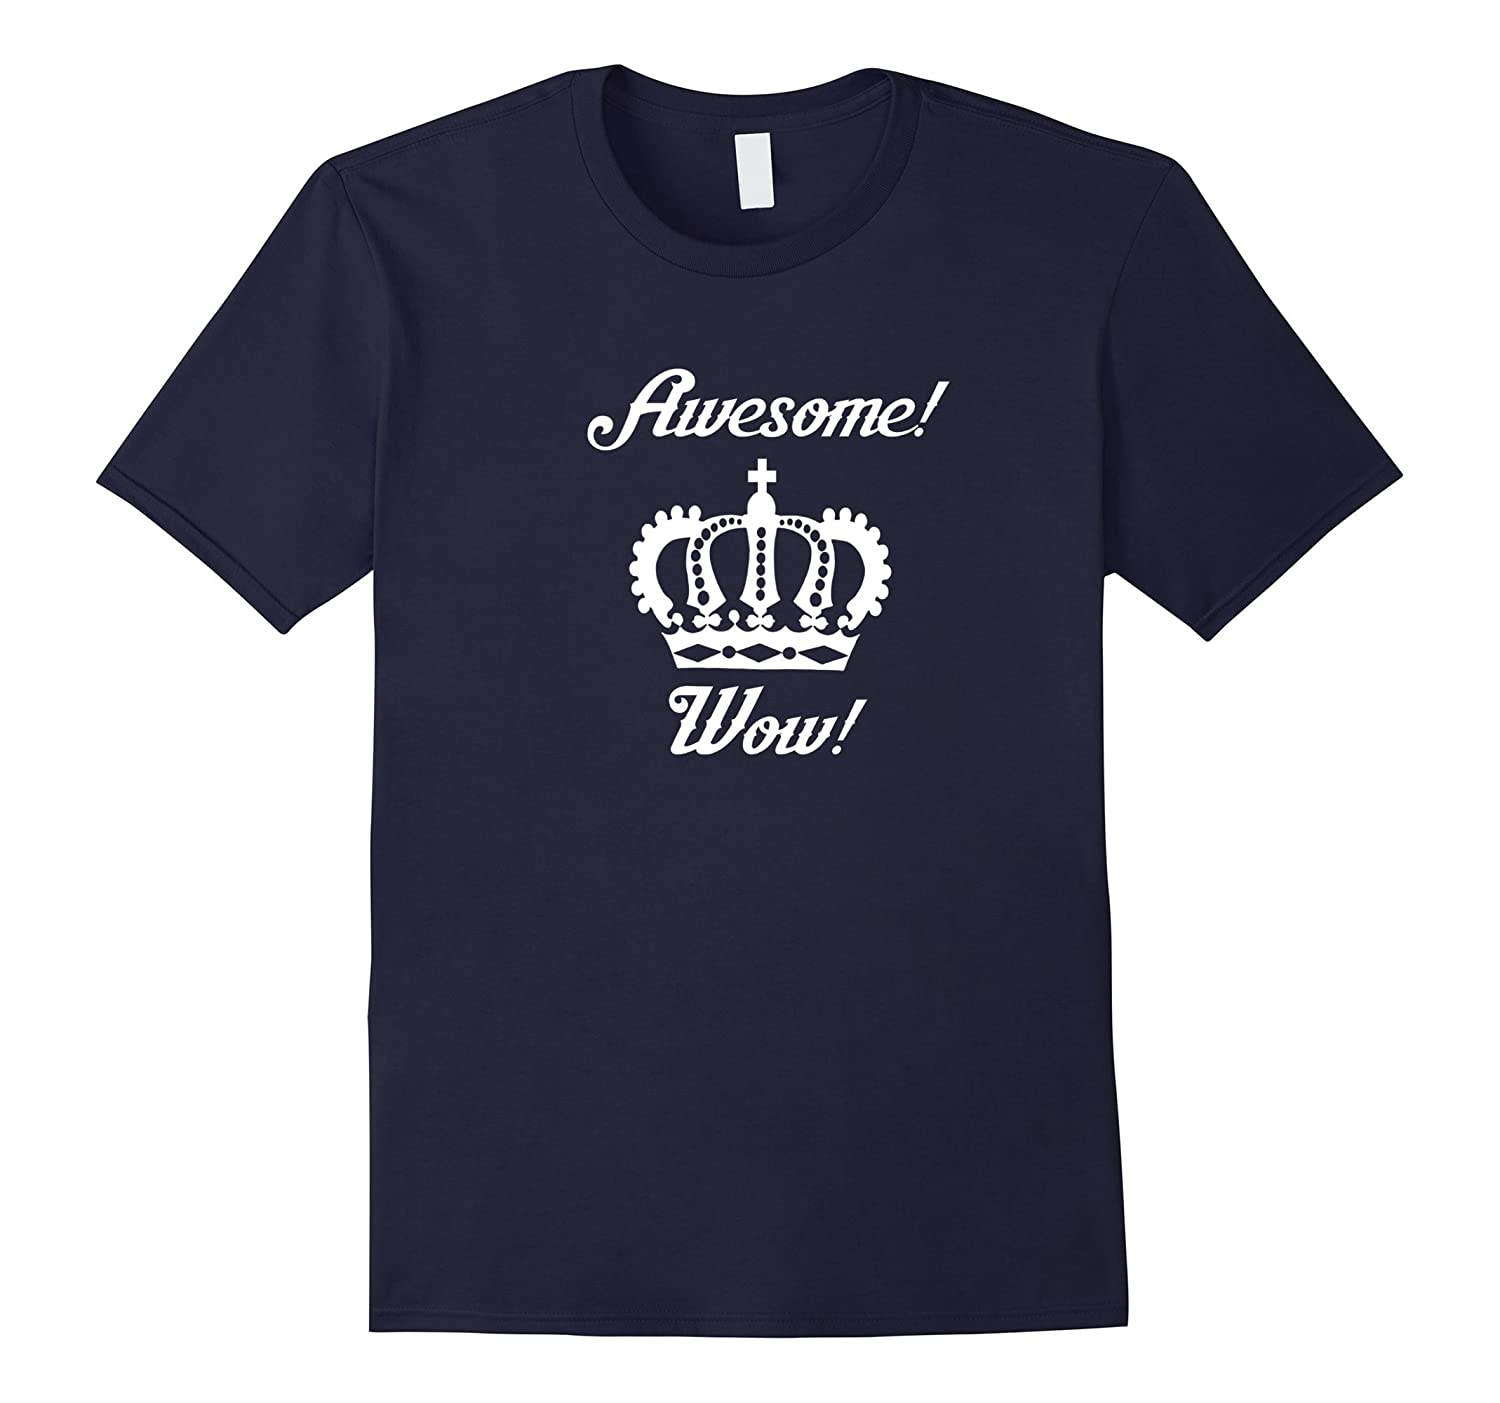 Awesome, wow t-shirt (with crown)-Art